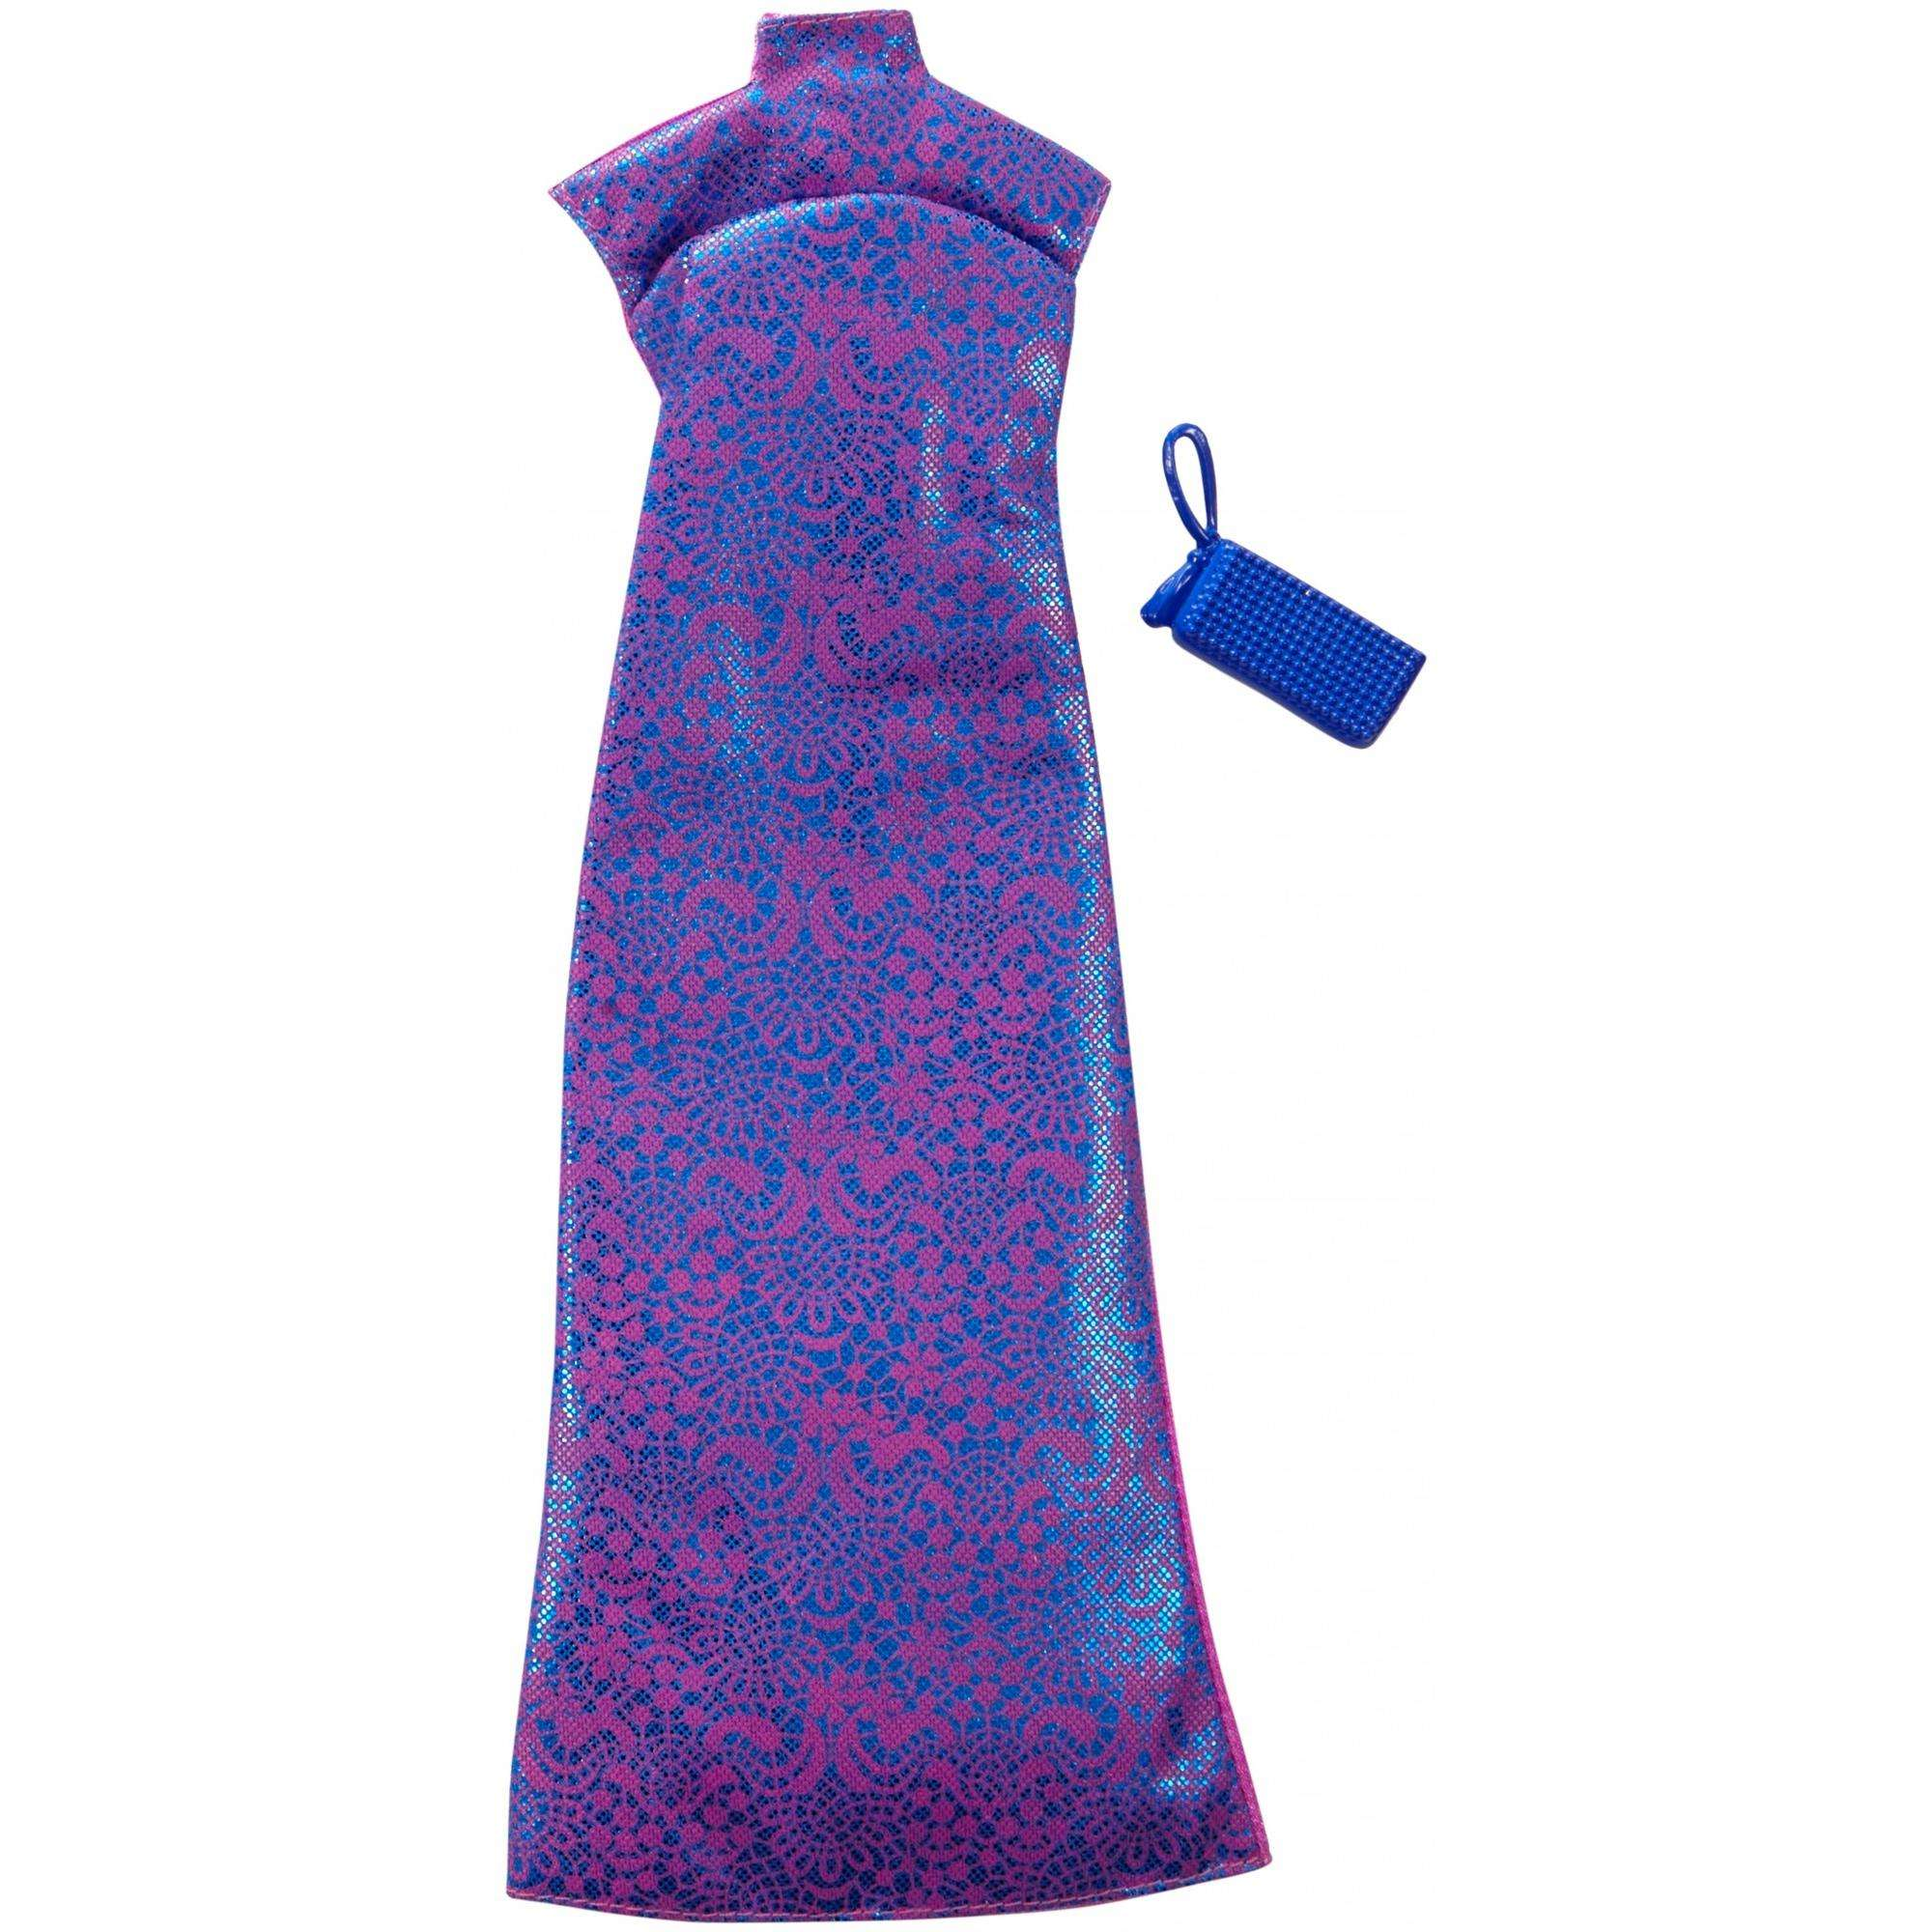 Barbie Fashions Purple Dress Pack